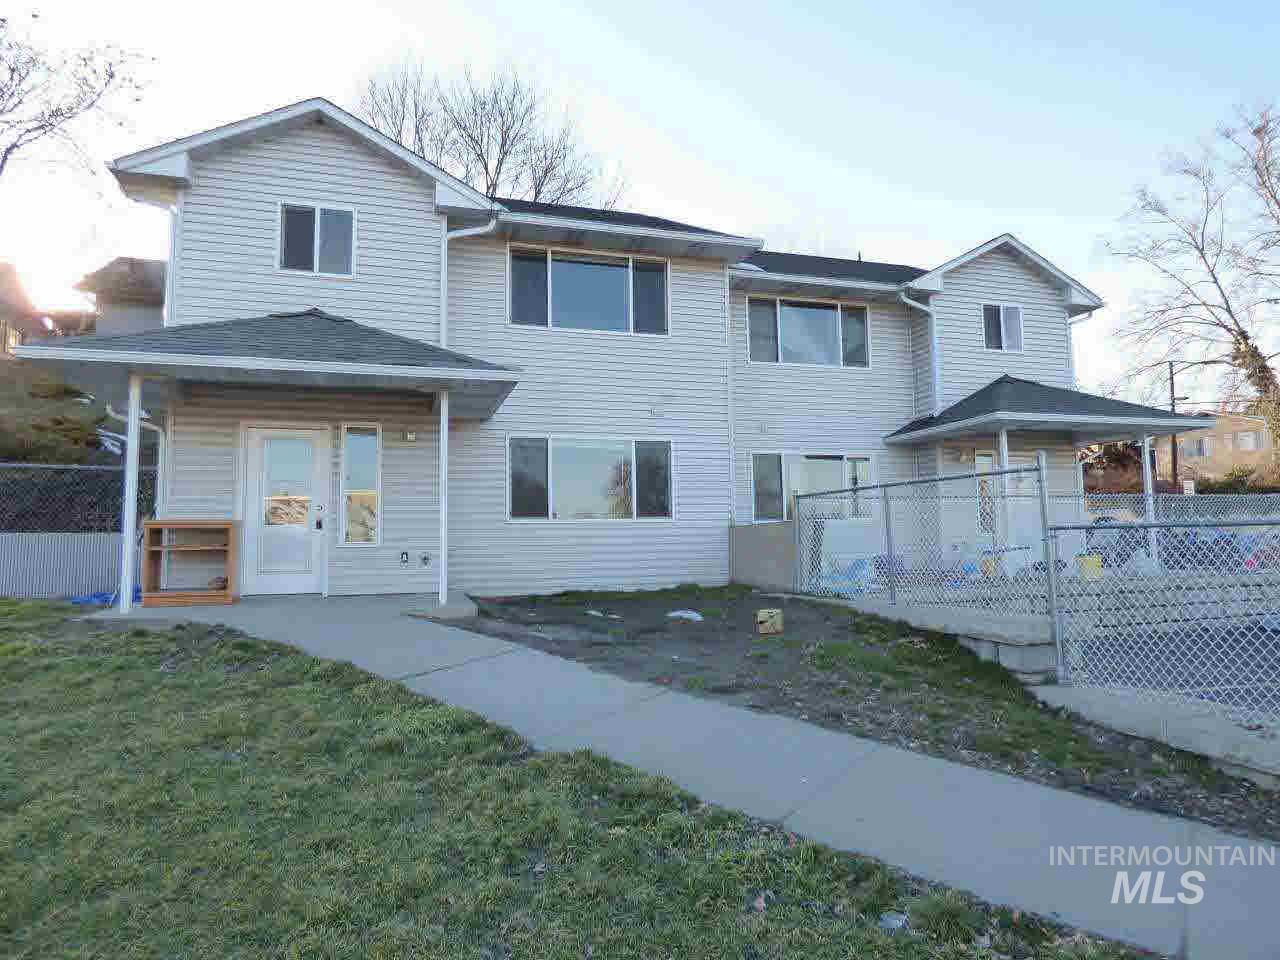 1650 9th Avenue, Lewiston, Idaho 83501, 3 Bedrooms, Residential Income For Sale, Price $300,000, 322174